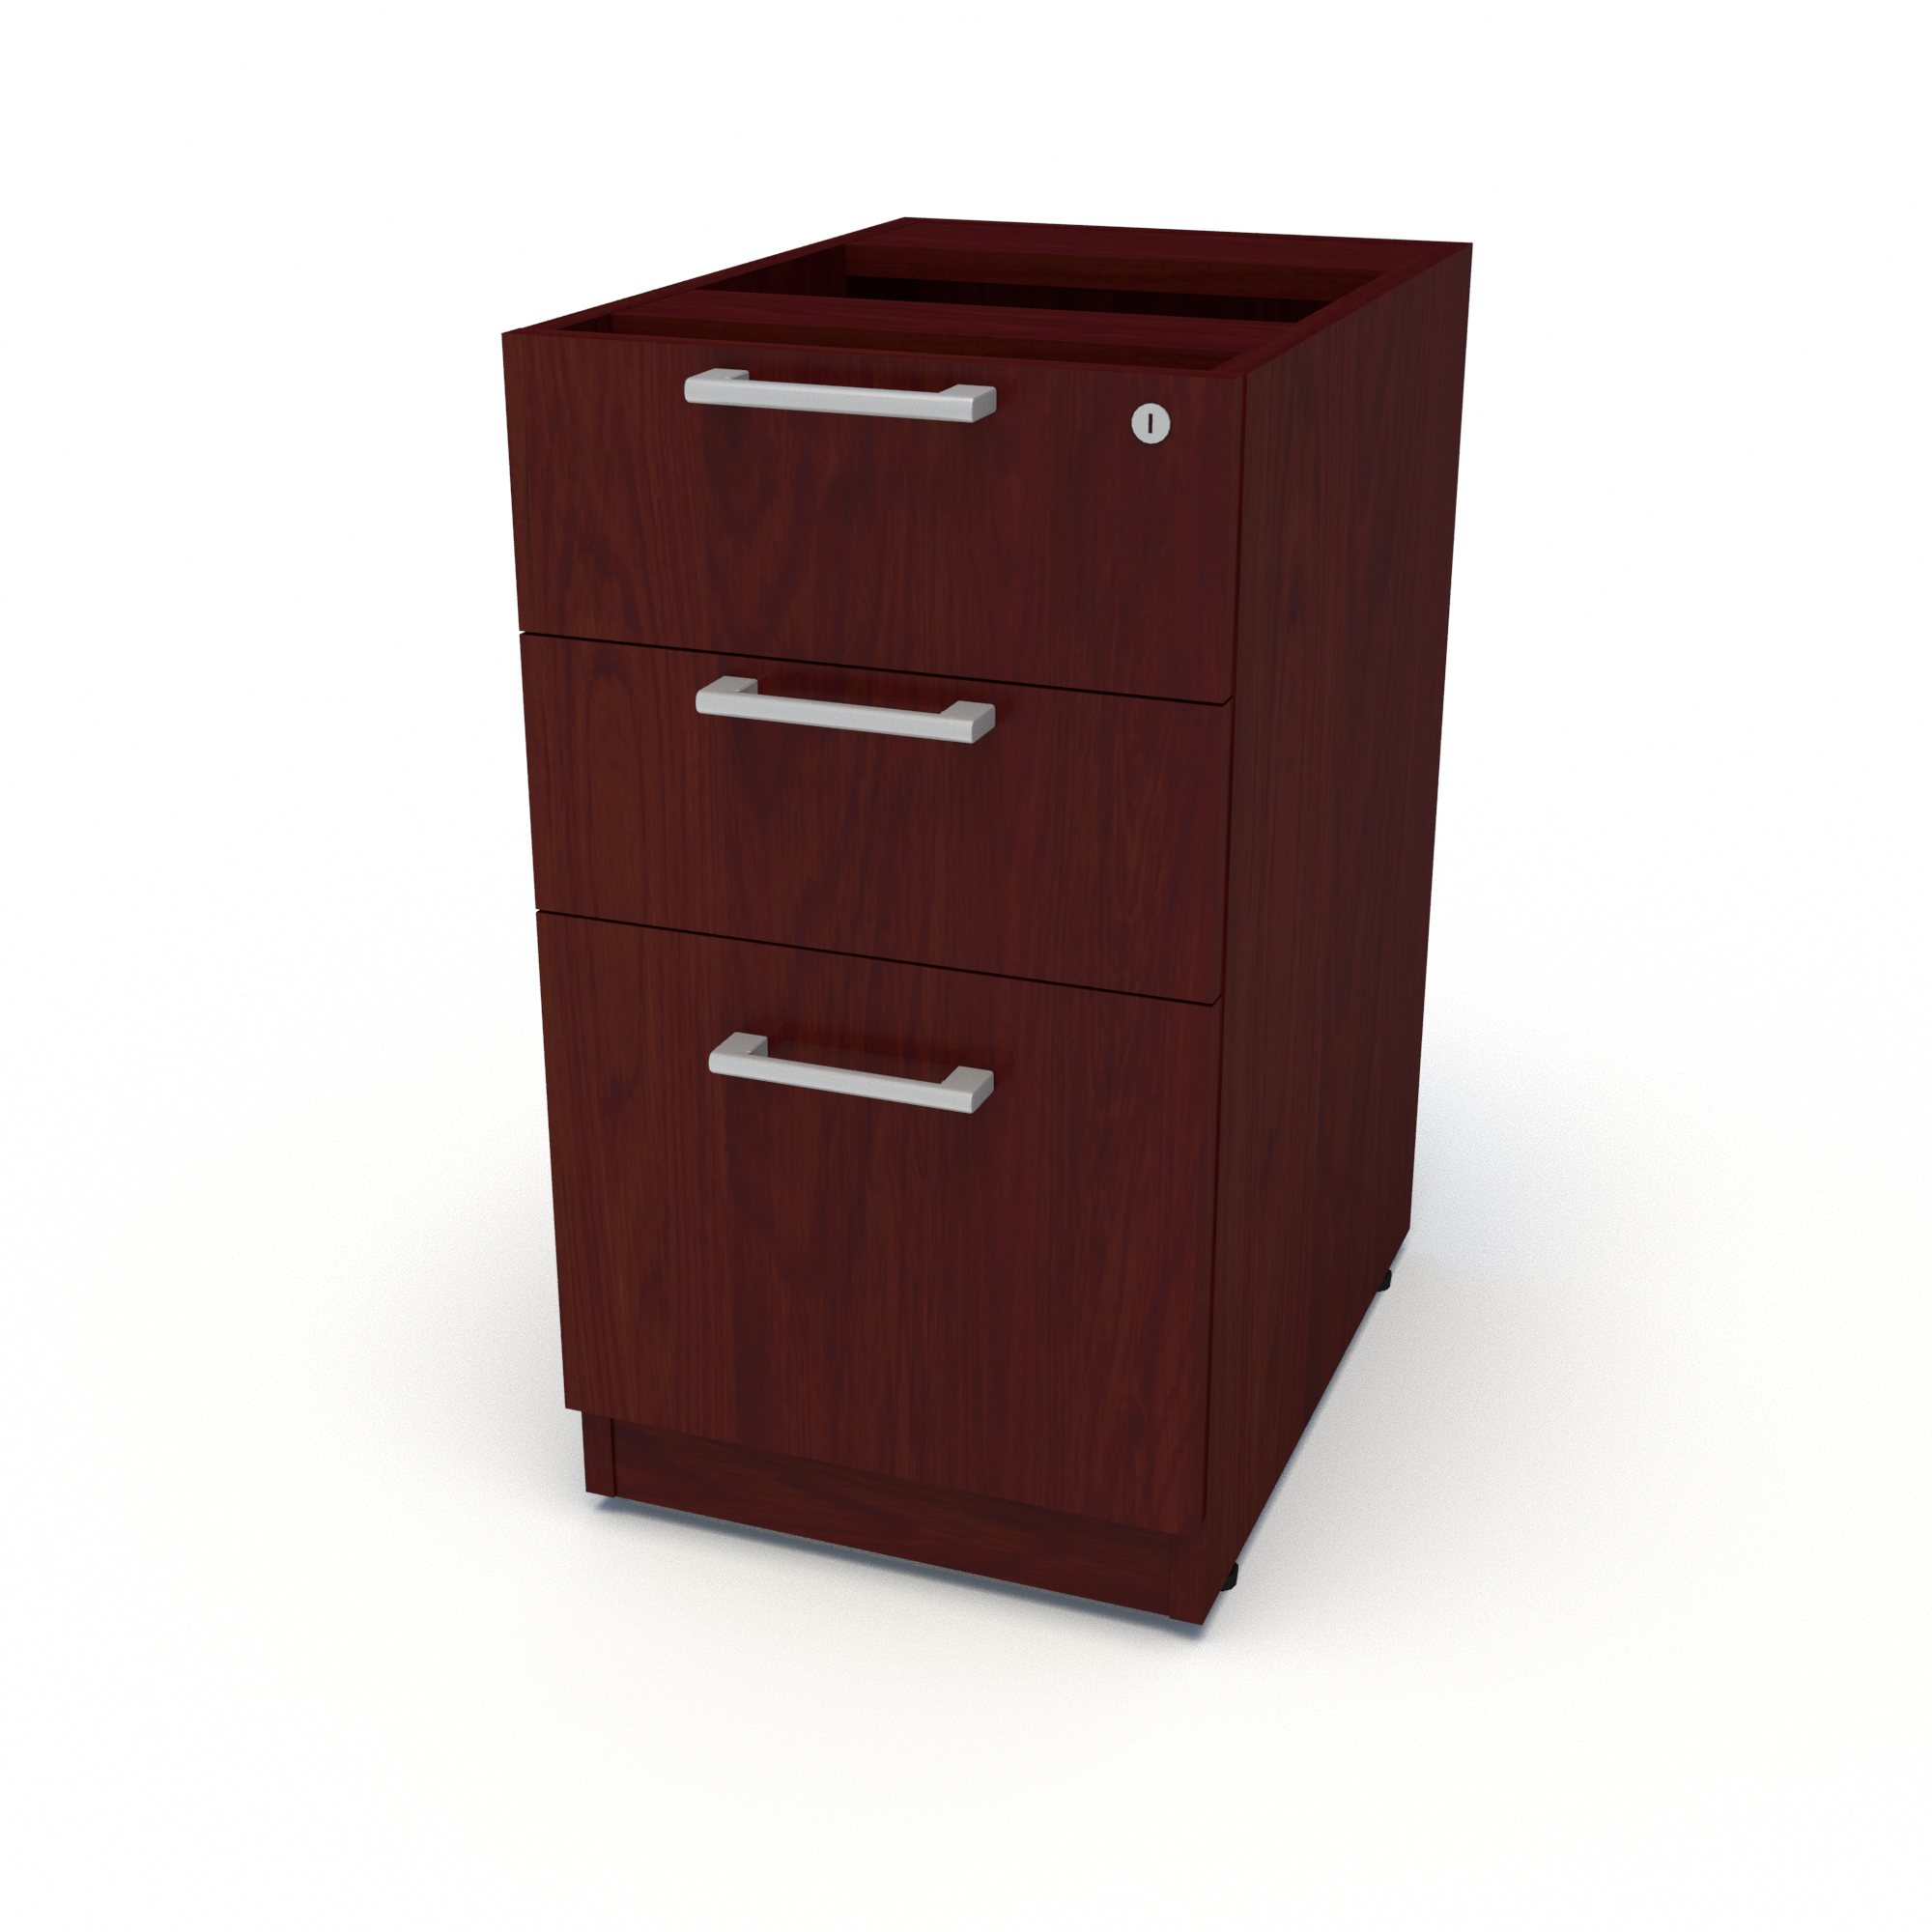 Top Supporting Pedestal, Box Box File (American Cherry)